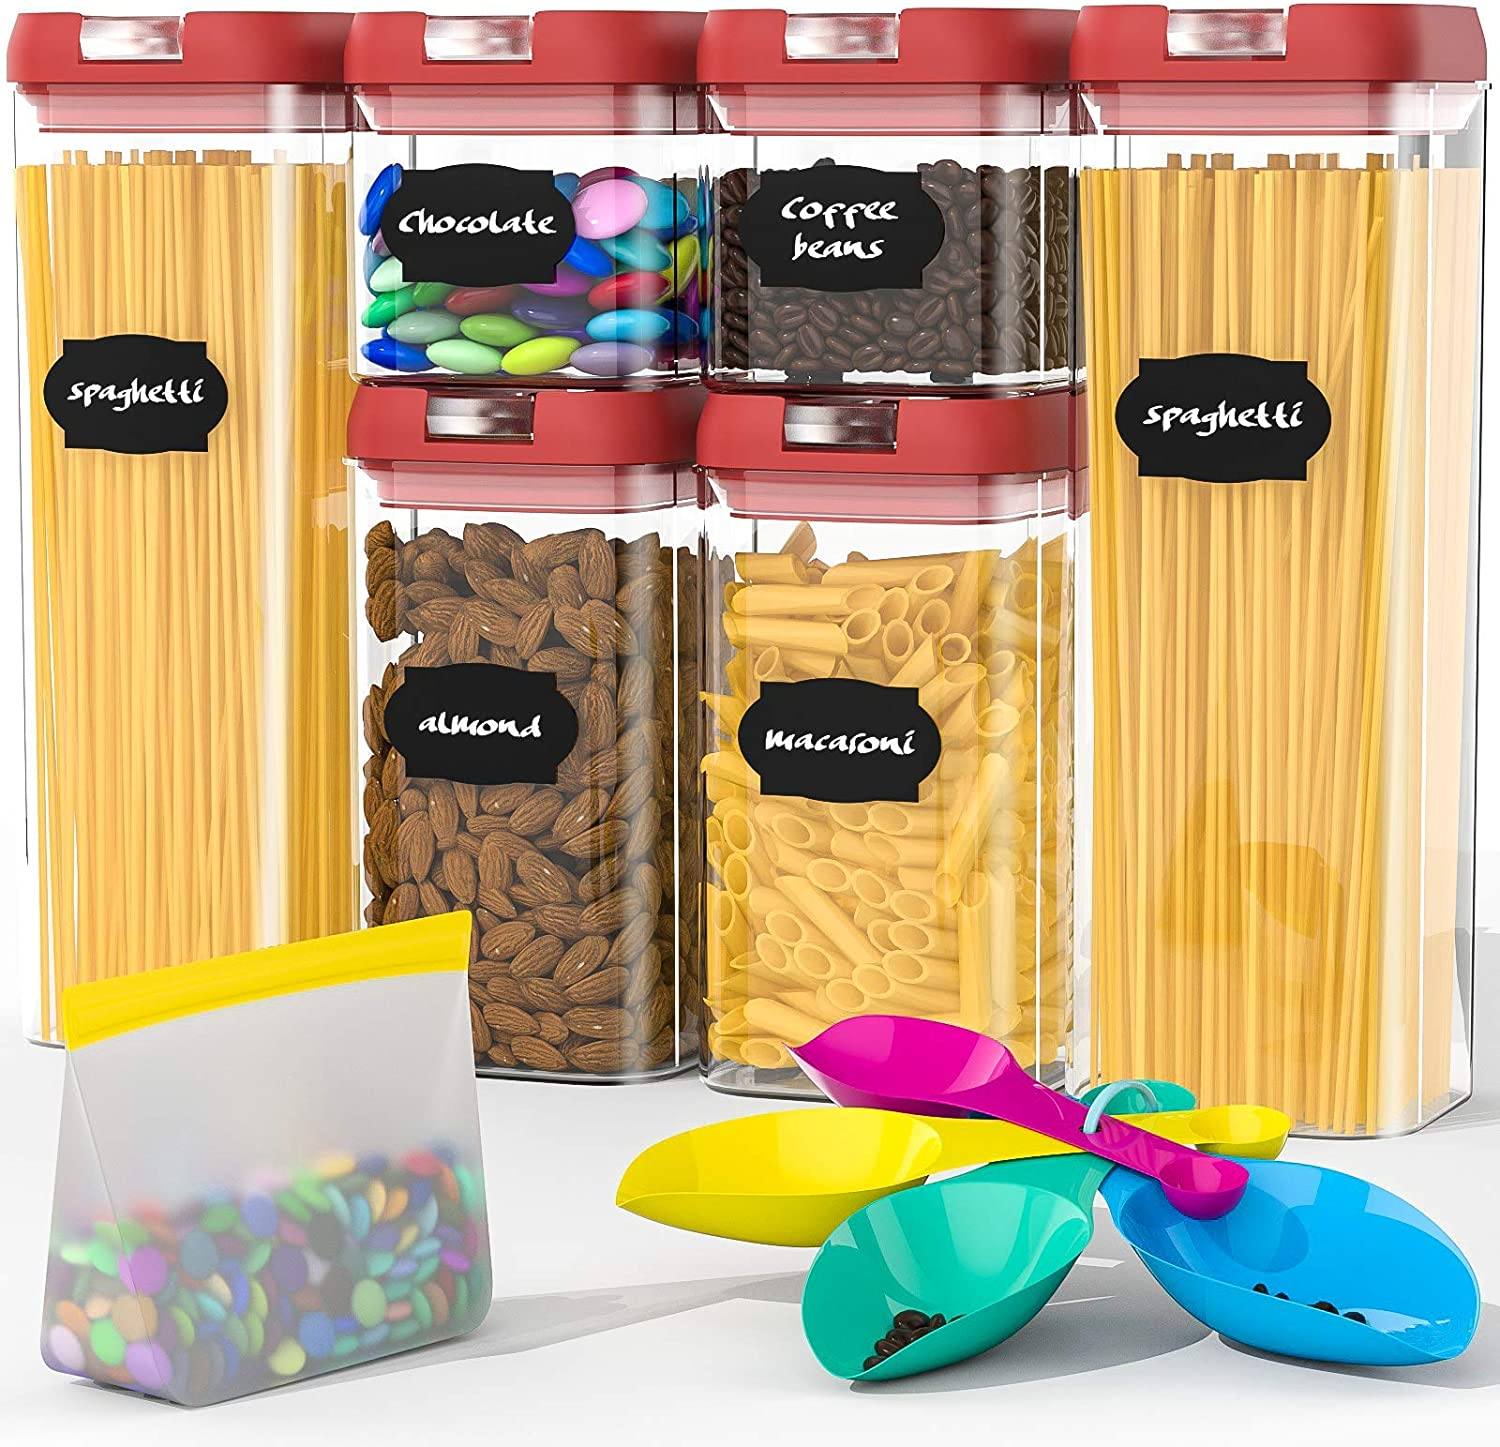 Airtight Food Storage Containers Set, BPA Free Plastic Cereal Containers Premium Kitchen Pantry Organization and Storage Container - Includes Spoon and a Small Food Storage Bag (6 Pieces)